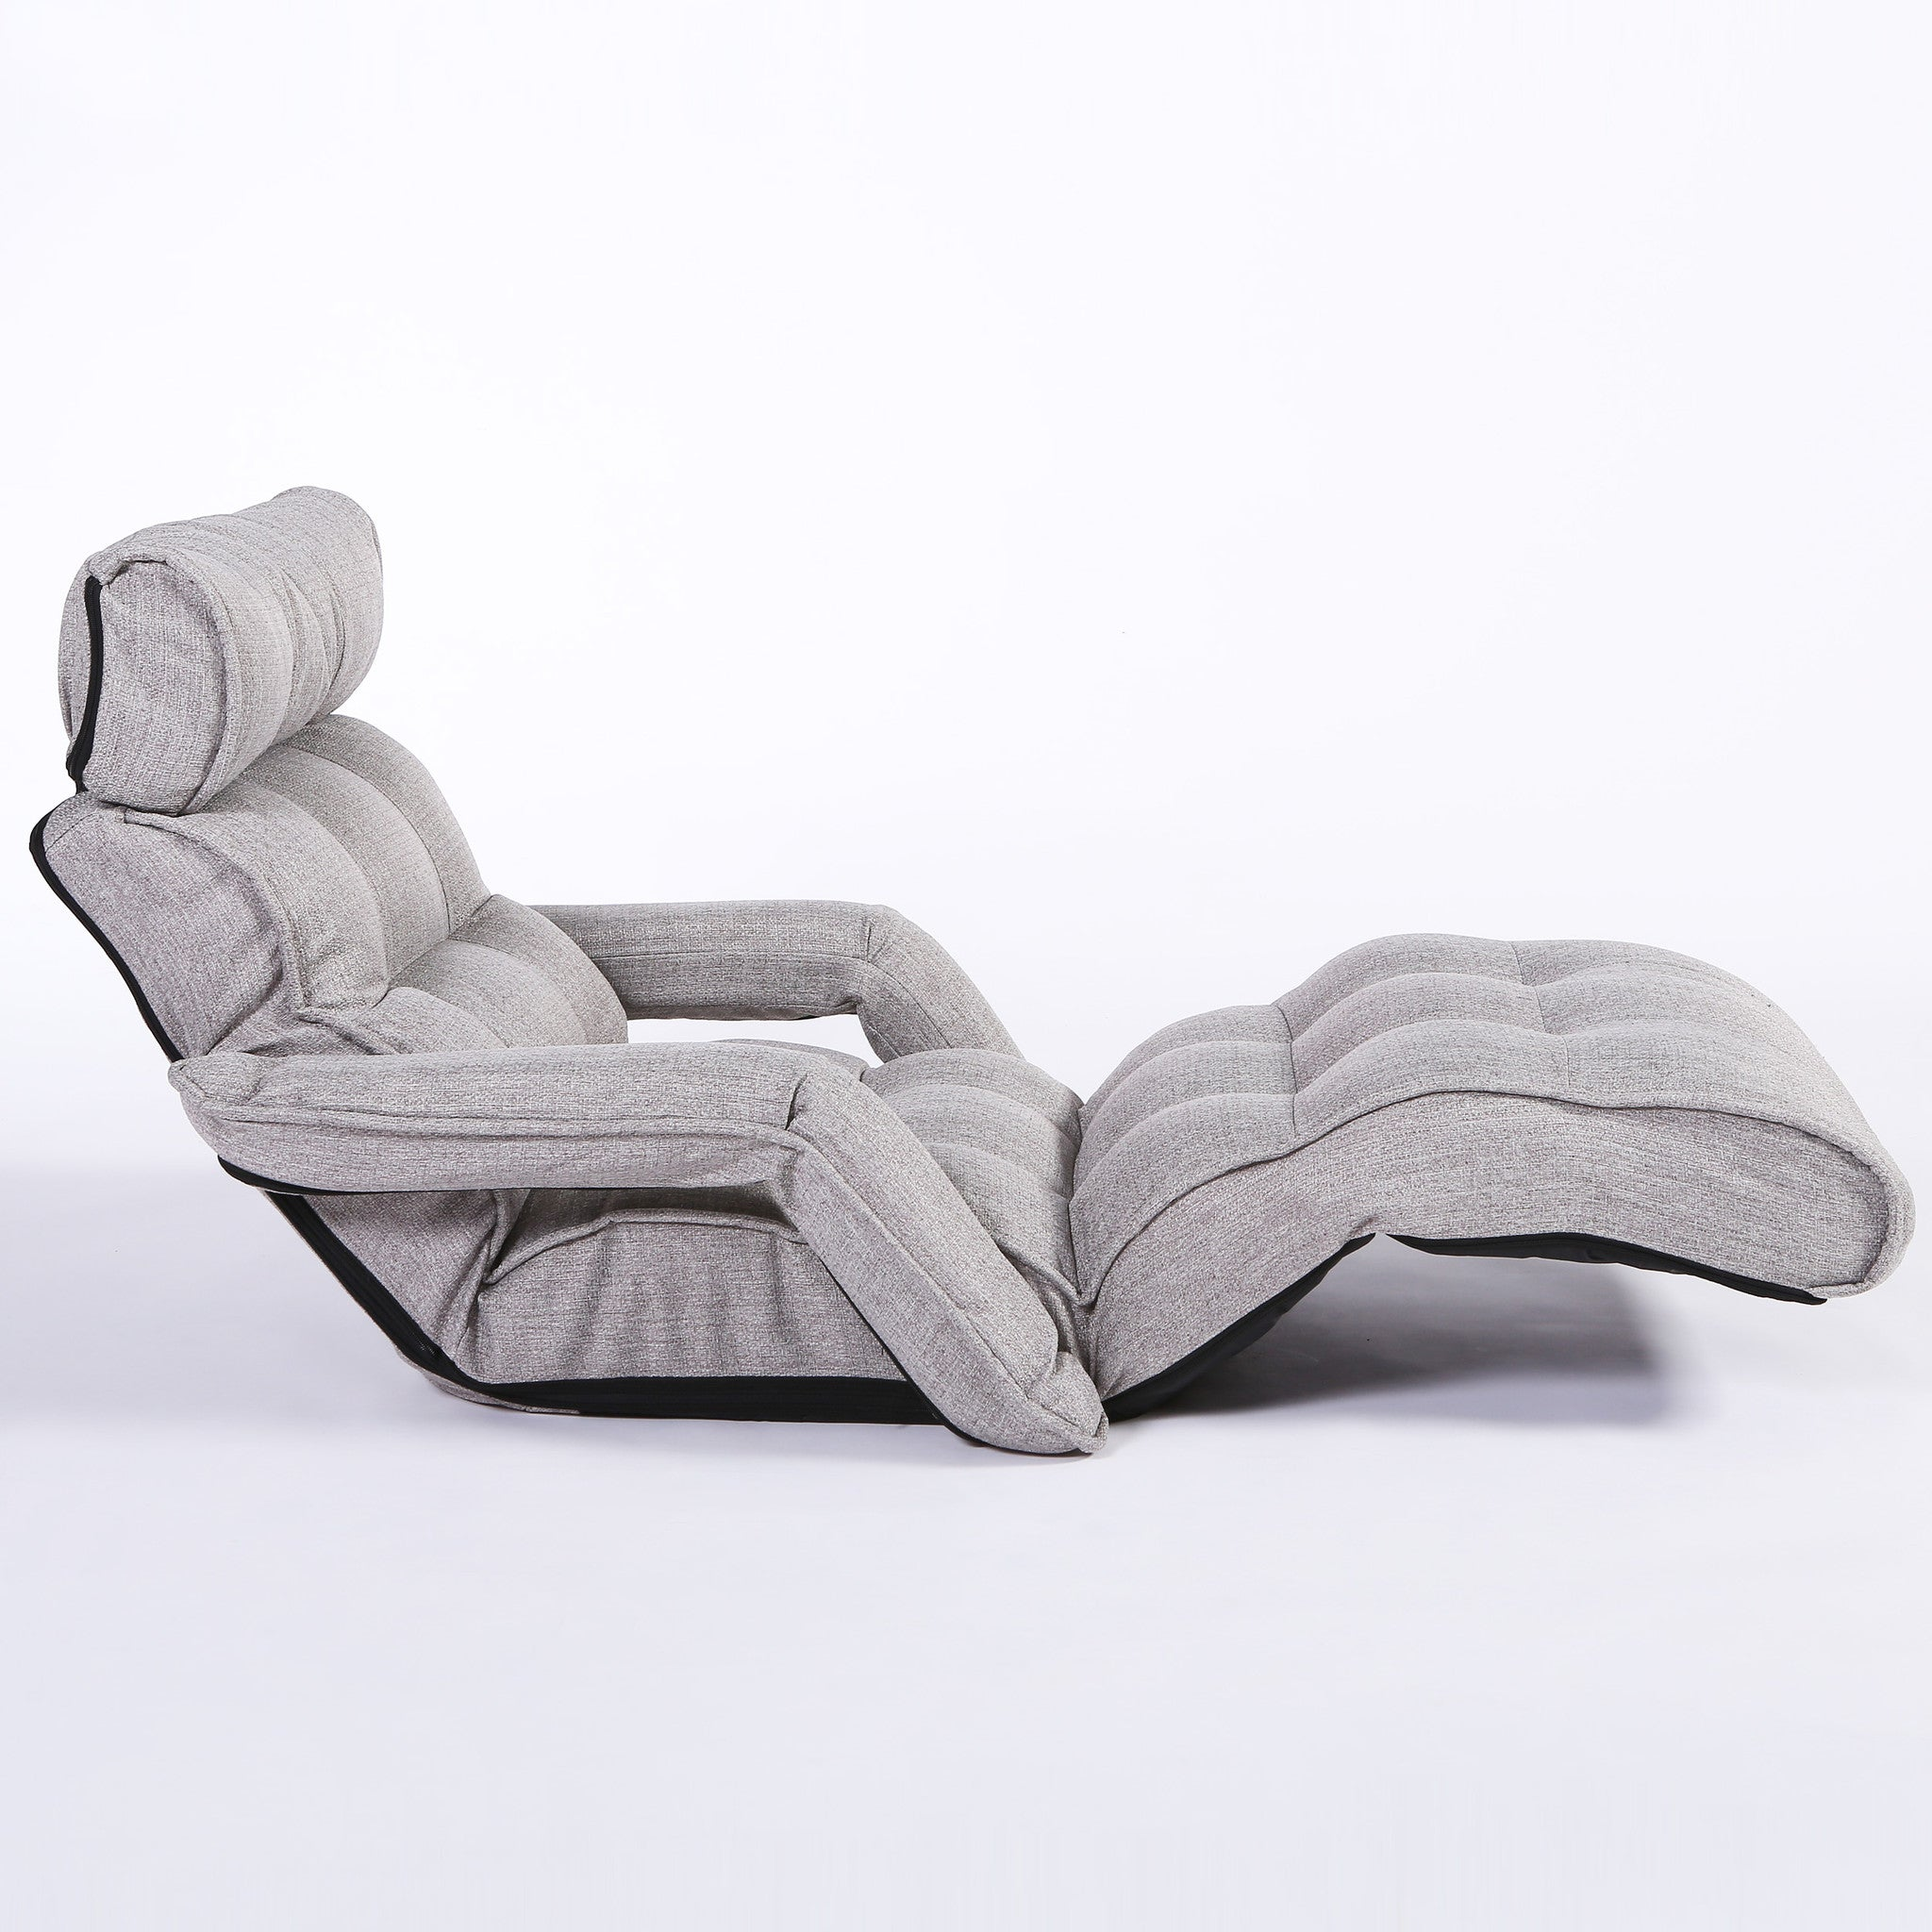 Furniture Floor Sofa Chairs for fice By Cozy Kino